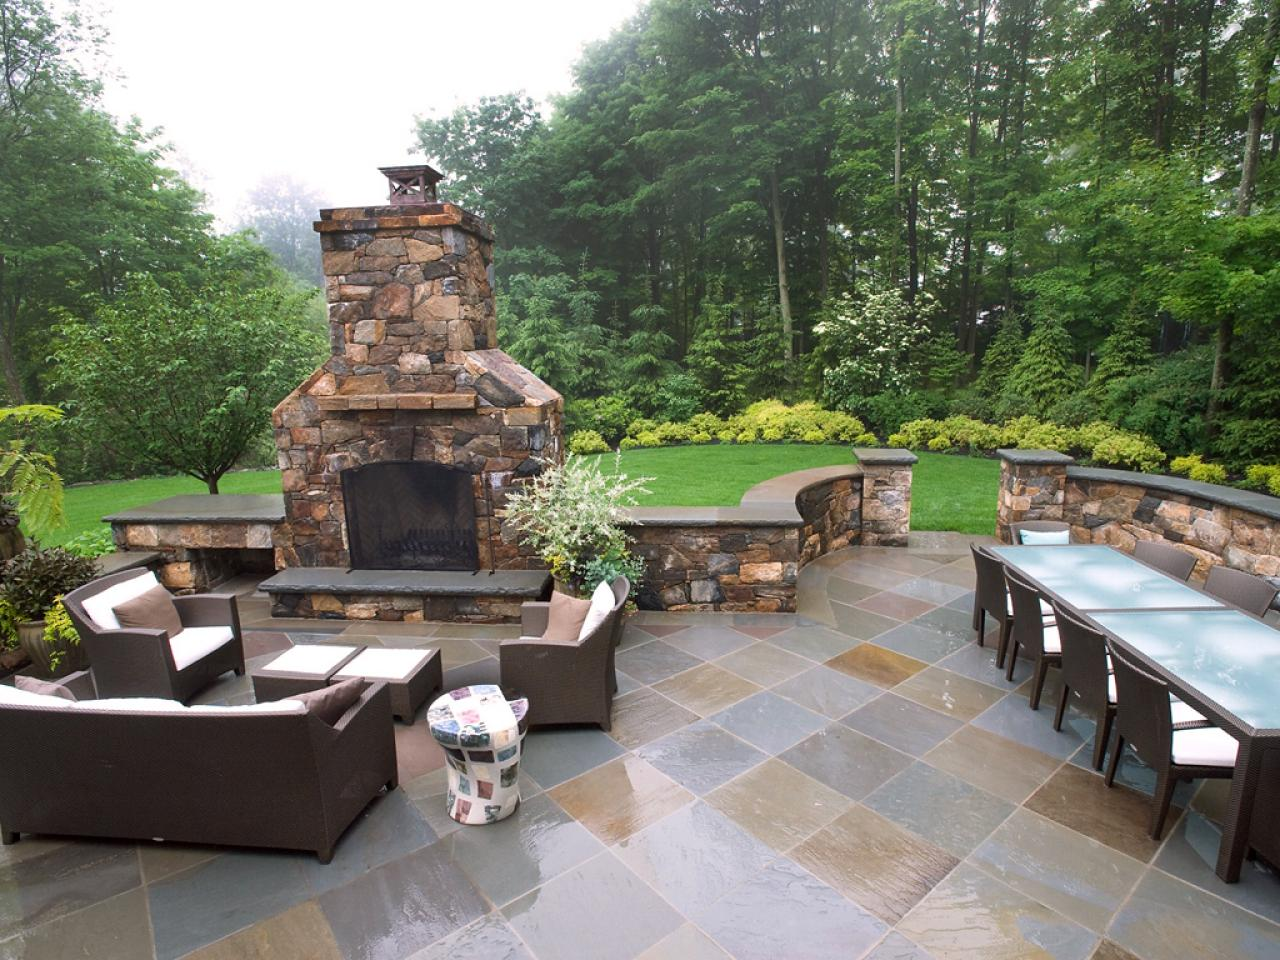 Patio Design & Installation-Dallas TX Professional Landscapers & Outdoor Living Designs-We offer Landscape Design, Outdoor Patios & Pergolas, Outdoor Living Spaces, Stonescapes, Residential & Commercial Landscaping, Irrigation Installation & Repairs, Drainage Systems, Landscape Lighting, Outdoor Living Spaces, Tree Service, Lawn Service, and more.